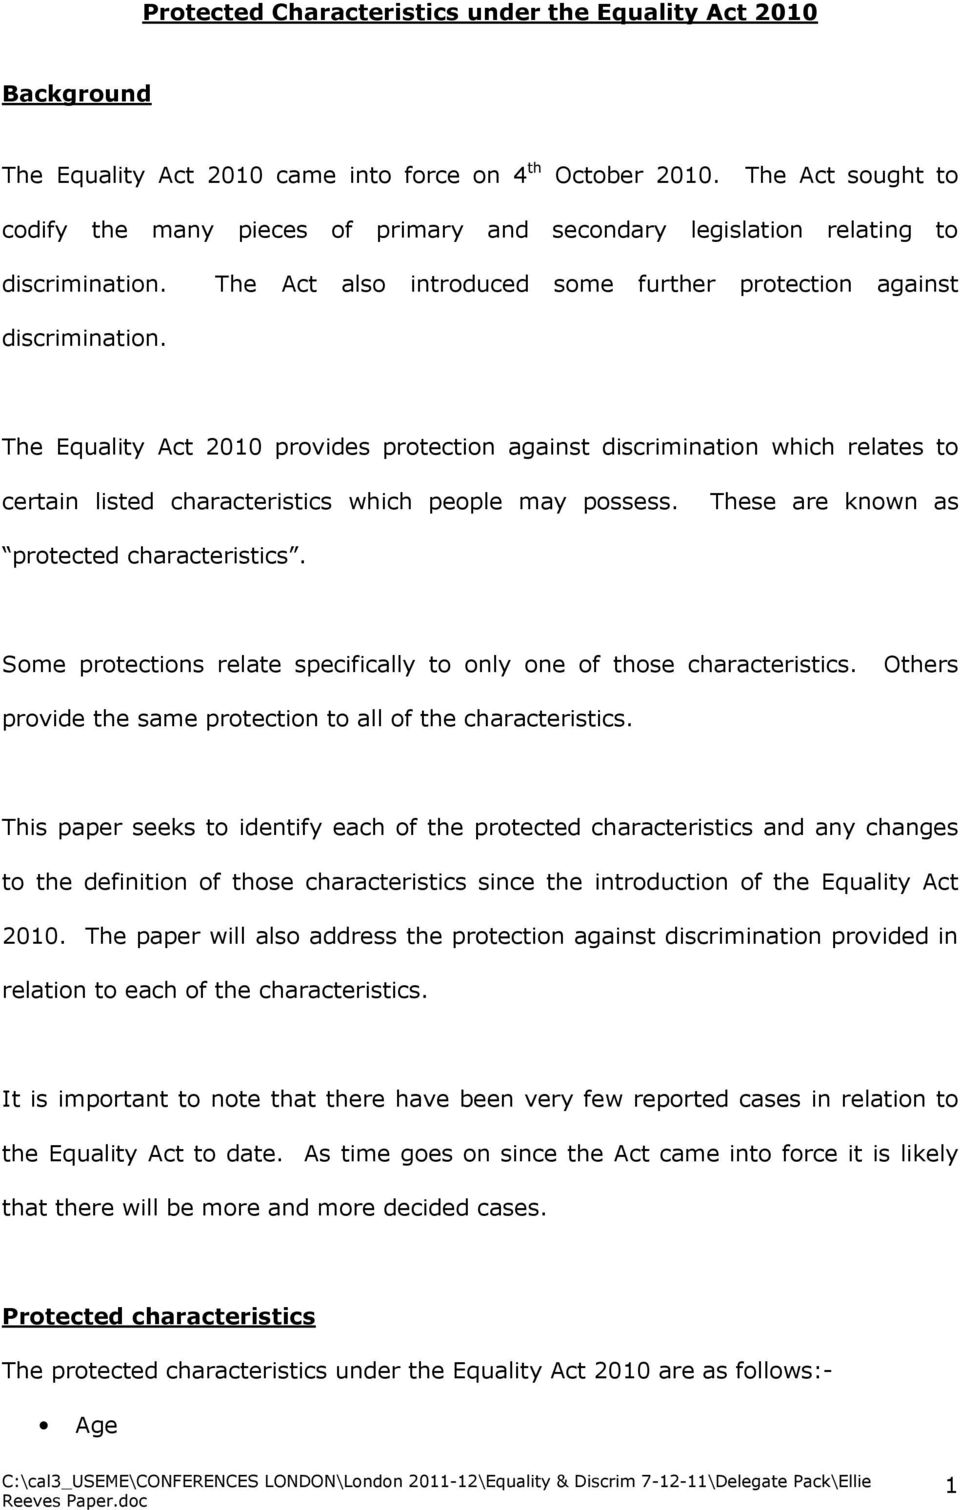 The Equality Act 2010 provides protection against discrimination which relates to certain listed characteristics which people may possess. These are known as protected characteristics.